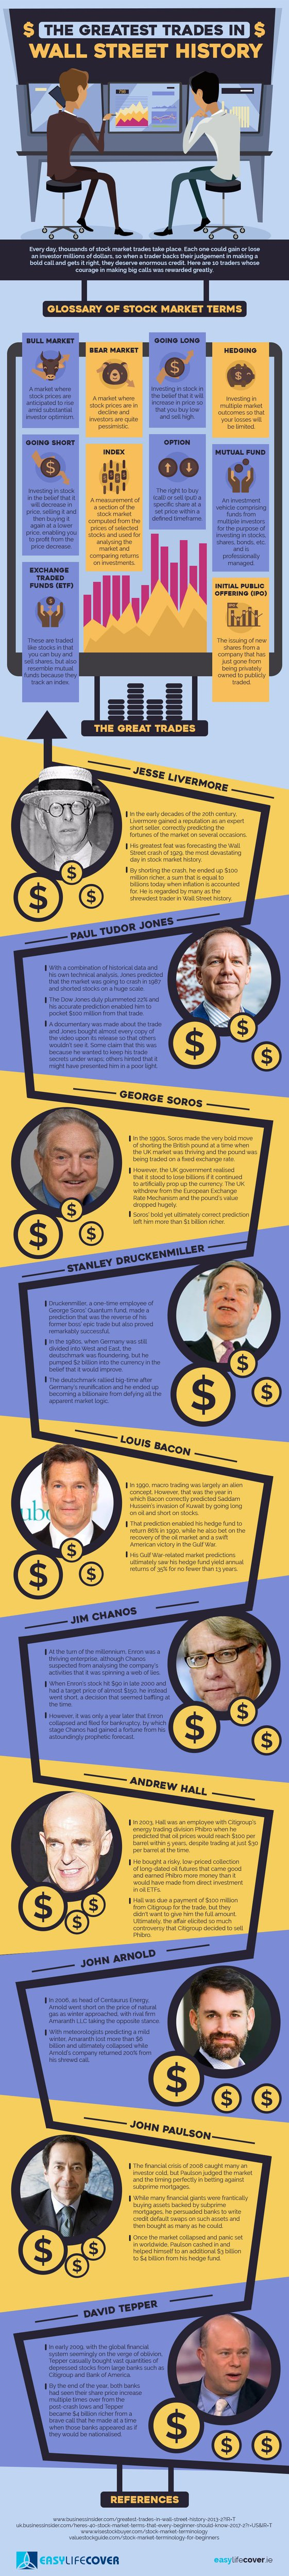 the greatest trades of wall street